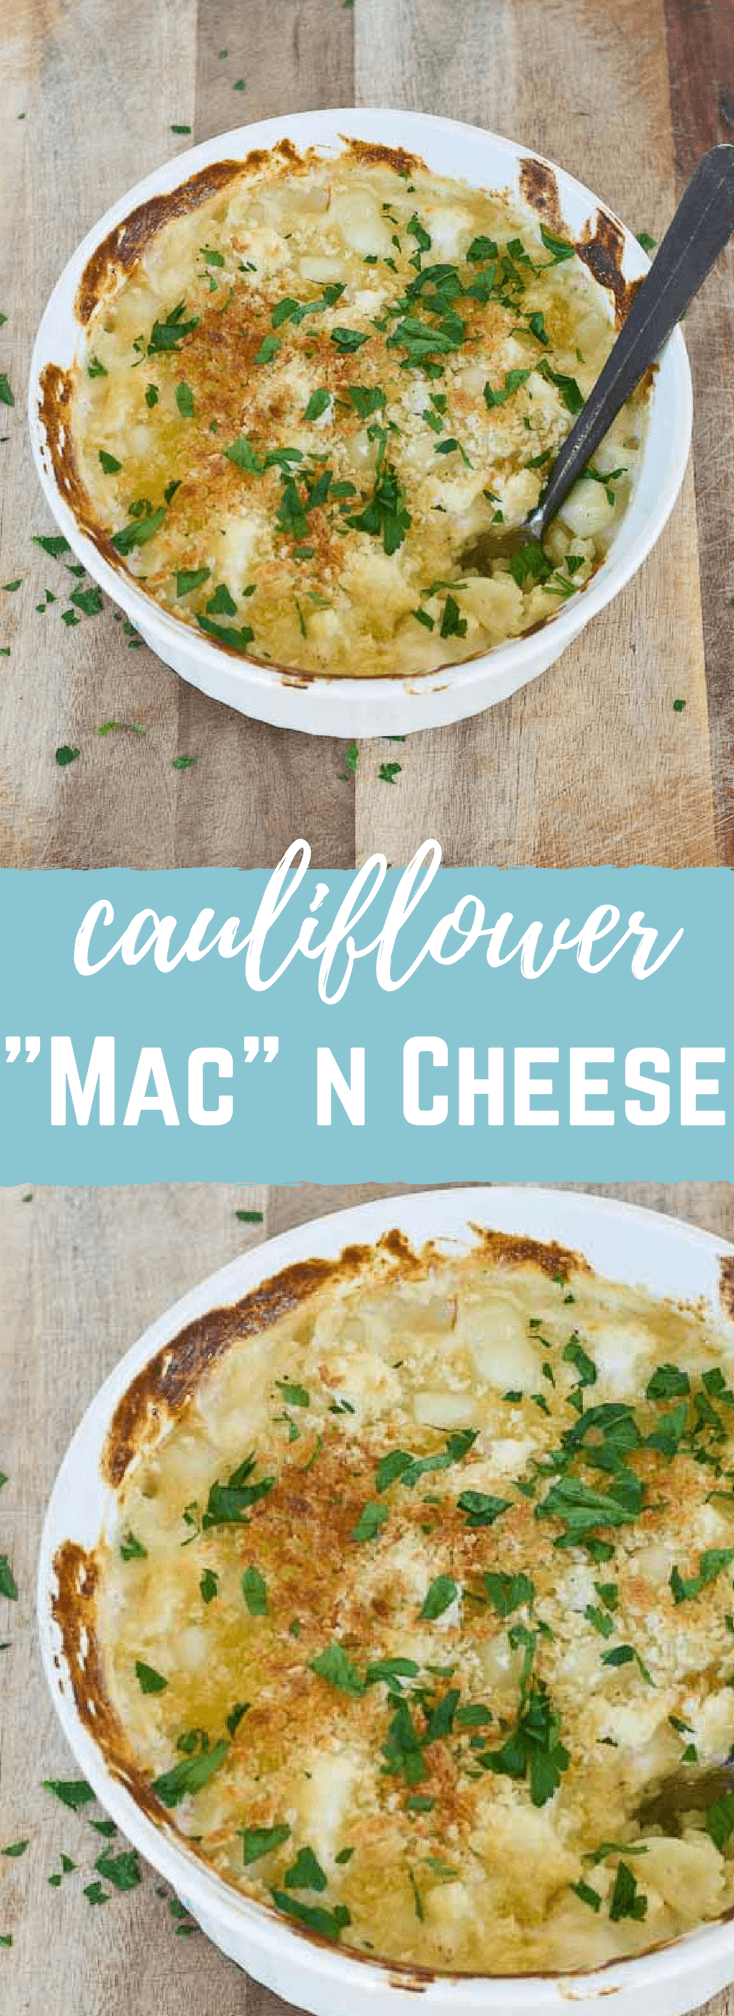 """This Cauliflower """"Mac"""" n Cheese, made with gnocchi instead of macaroni is so creamy and so cheesy, it's hard to resist eating it all up! Have a bowl of this """"Mac n Cheese"""" and eat your veggies too!"""